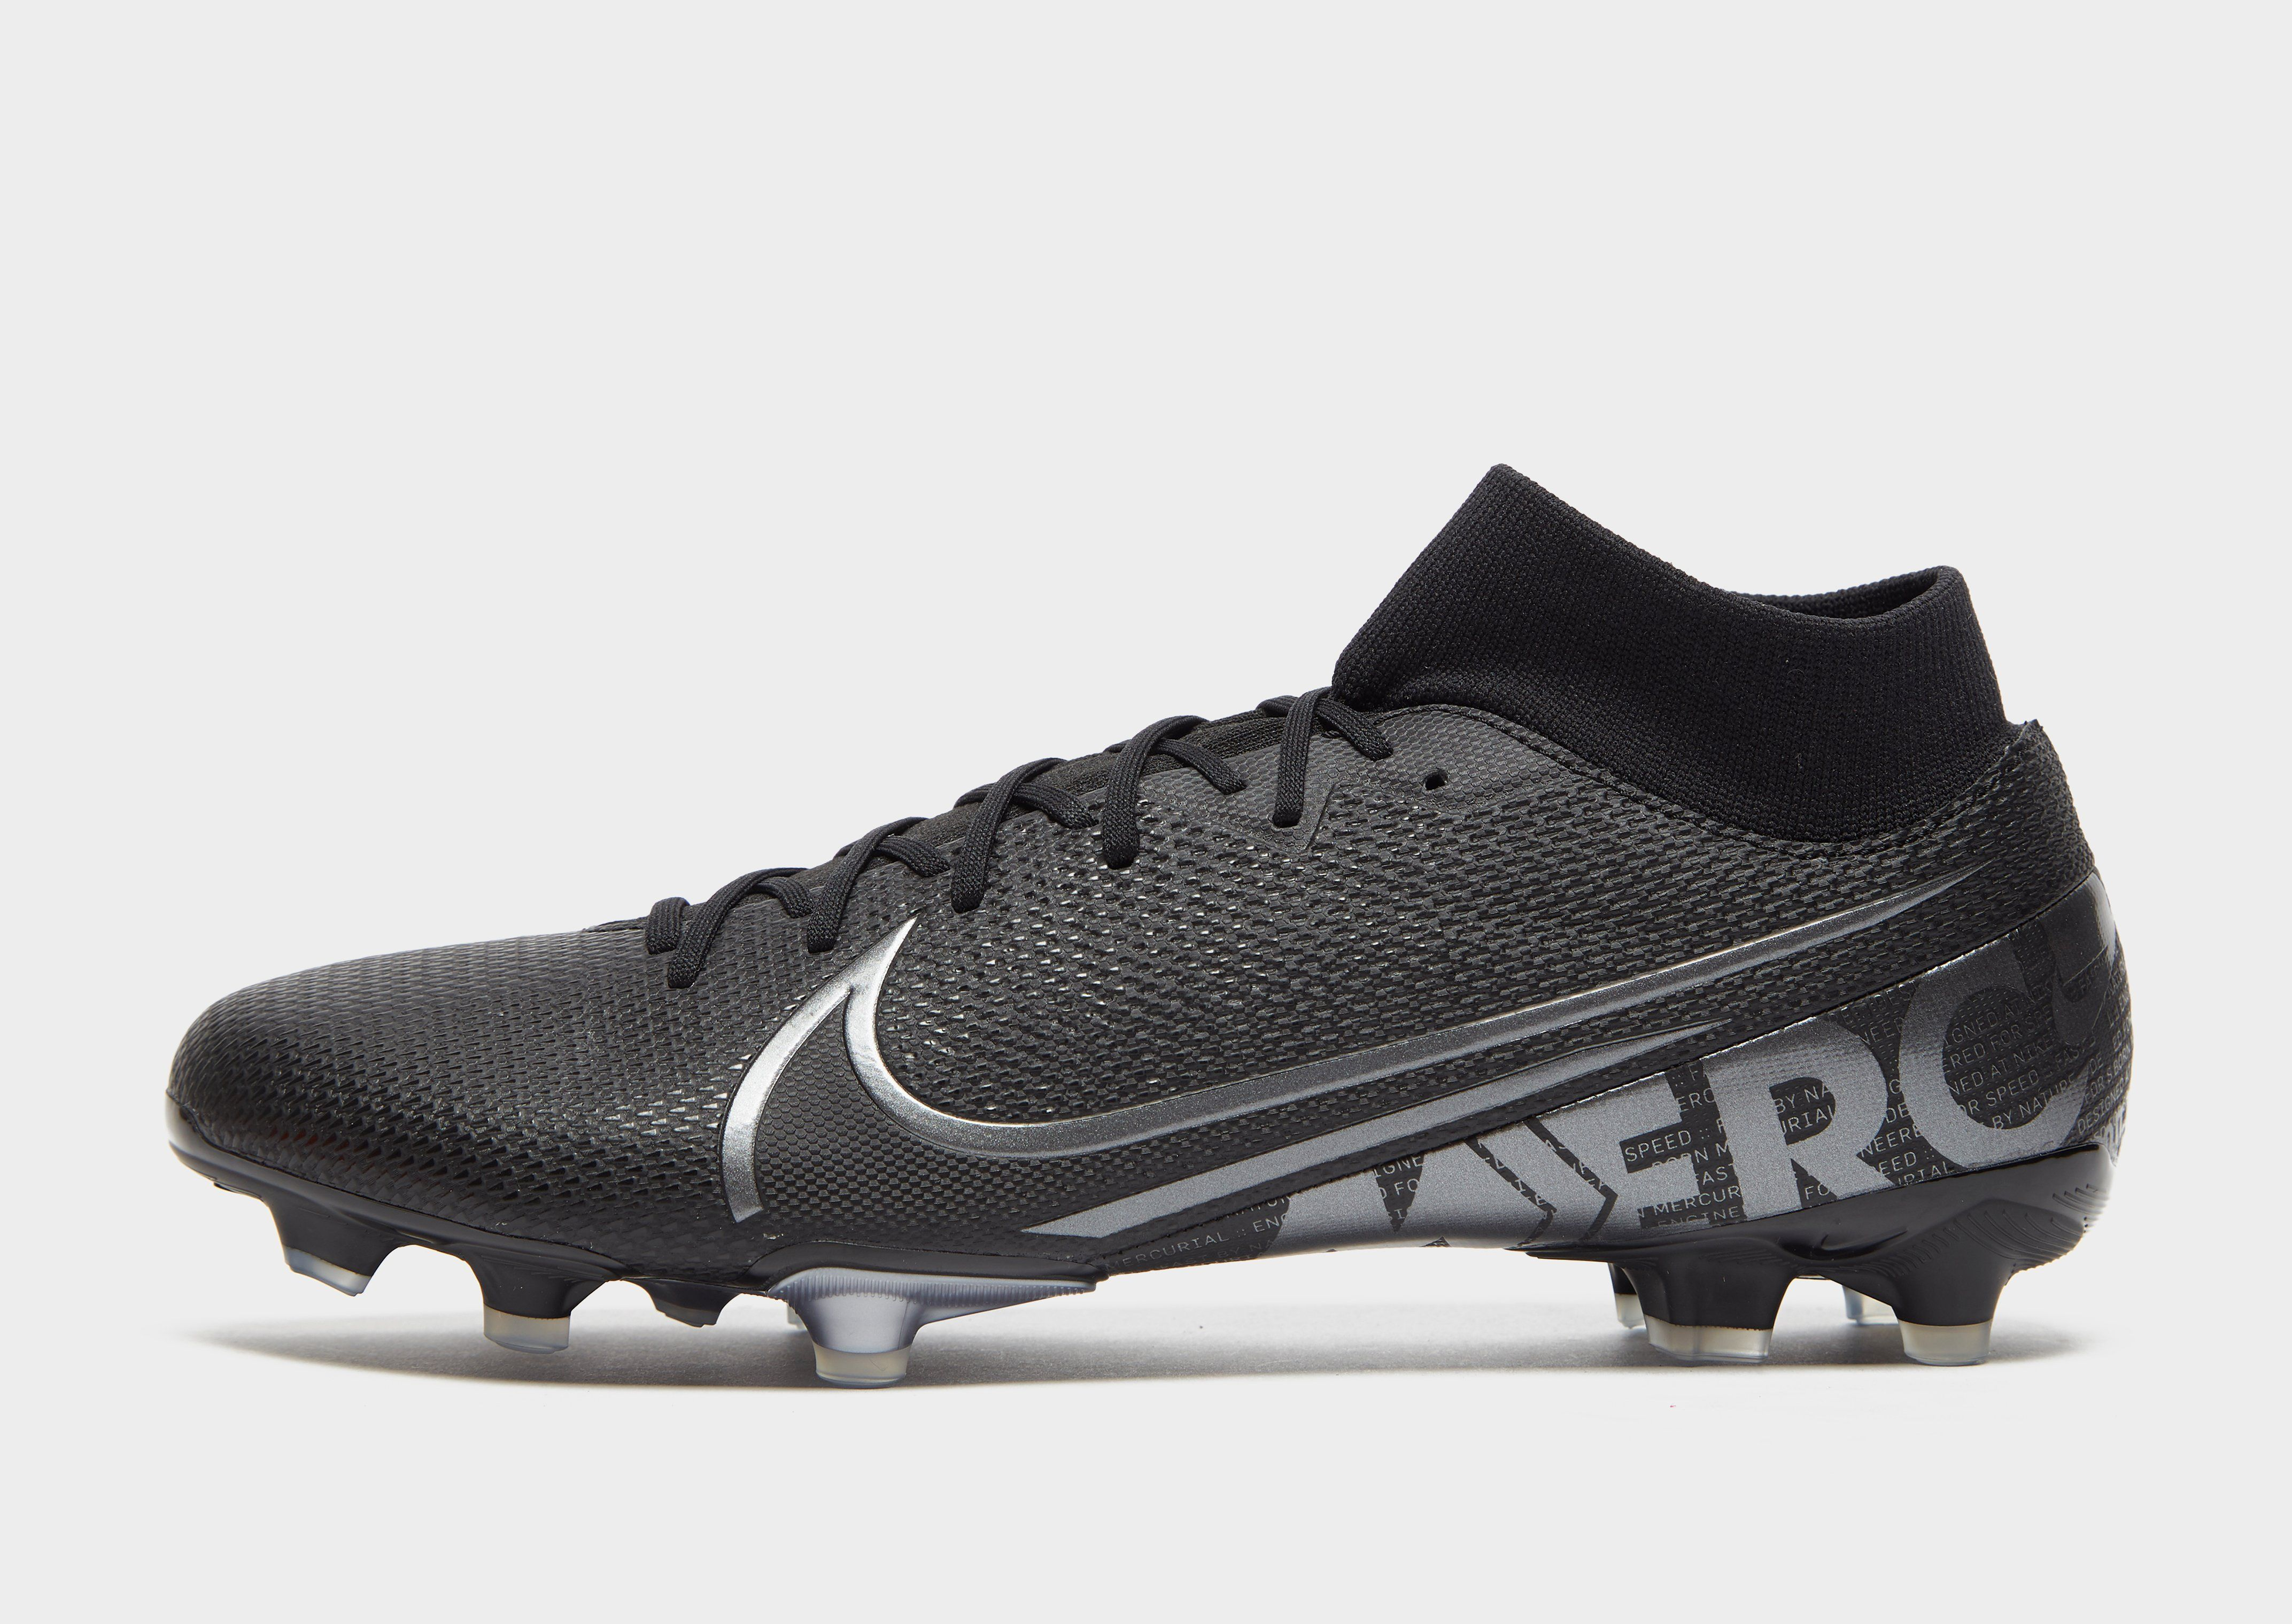 Nike Under The Radar Mercurial Superfly Academy Df Fg by Nike